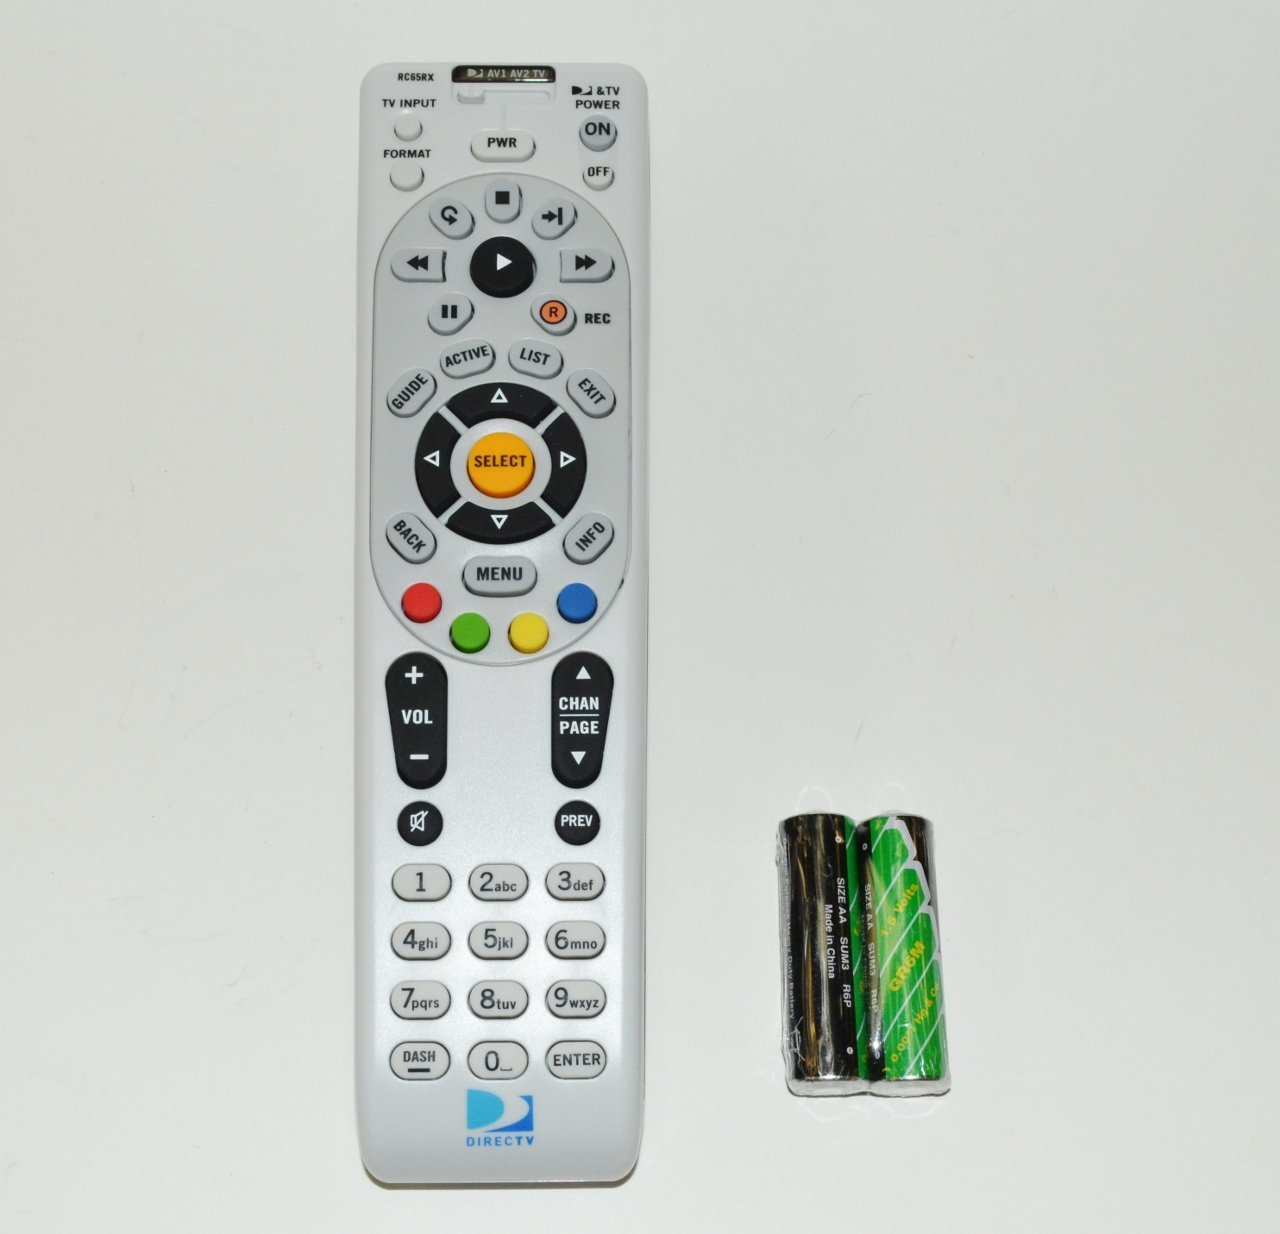 C-Wave RC65RX RF Remote [Electronics], Communicates over IR and RF frequencies By DIRECTV by DirecTV